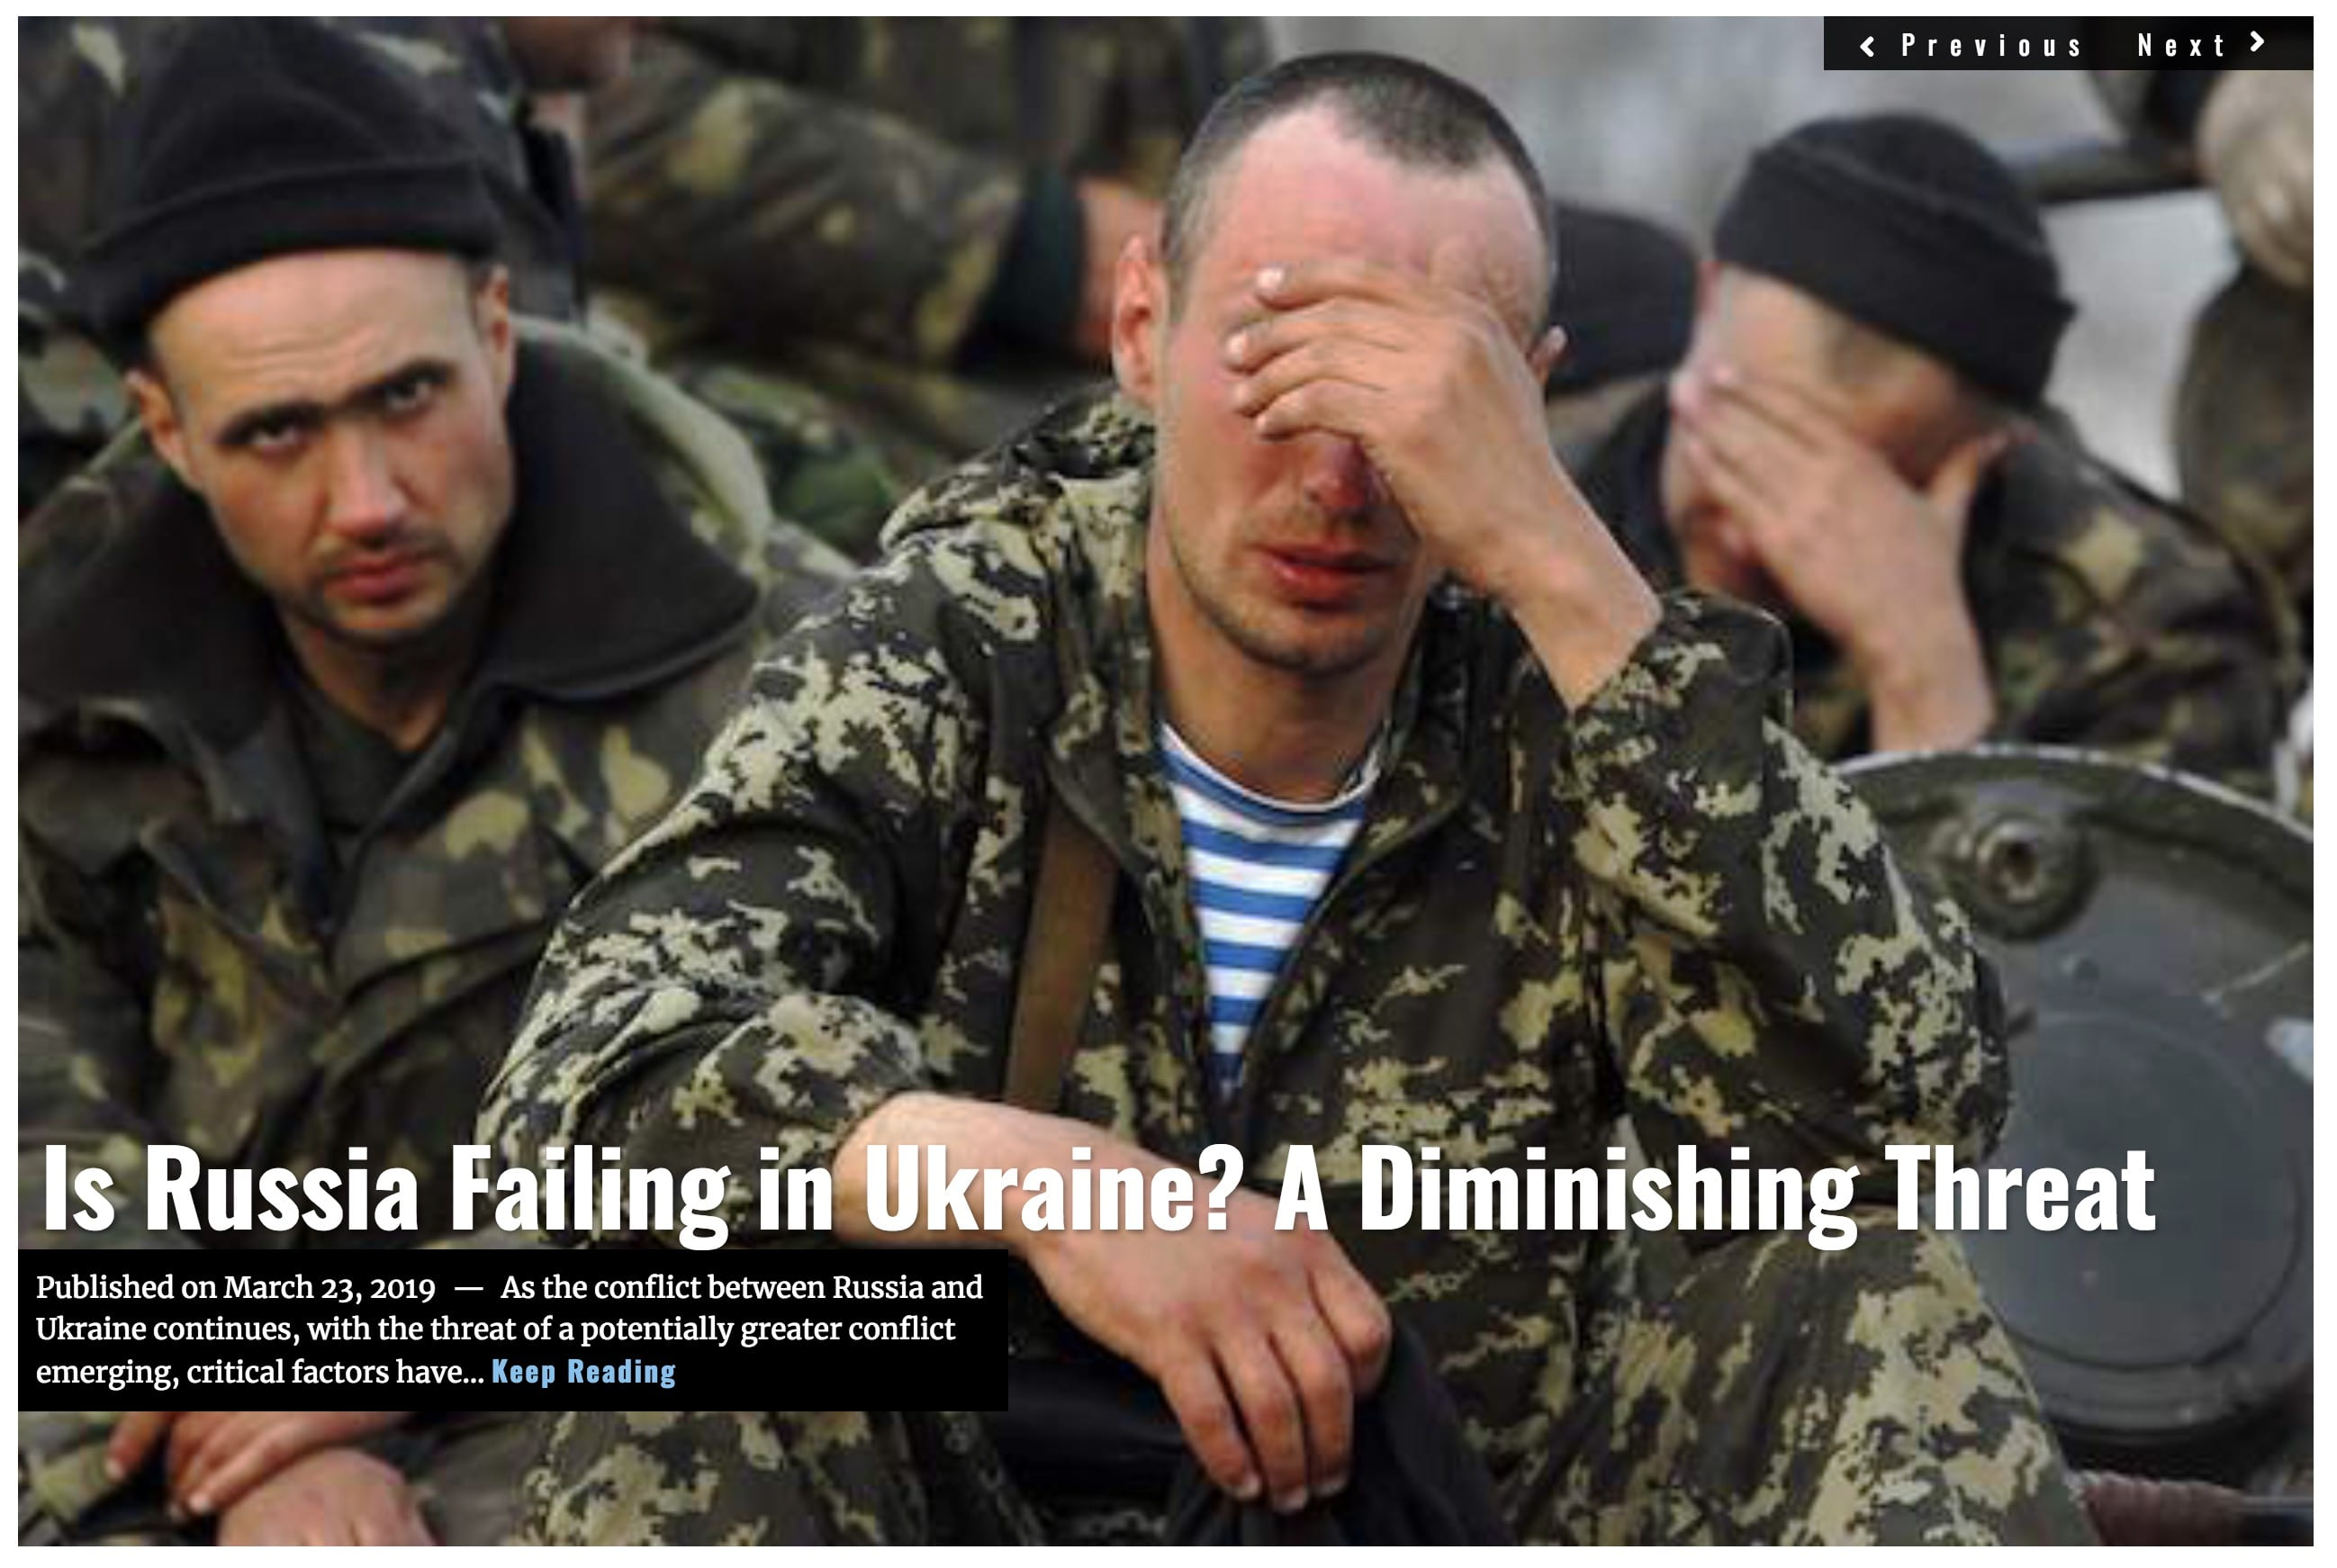 Image Lima Charlie News Headline Is Russia Failing In Ukraine - G.Busch MAR 23 2019